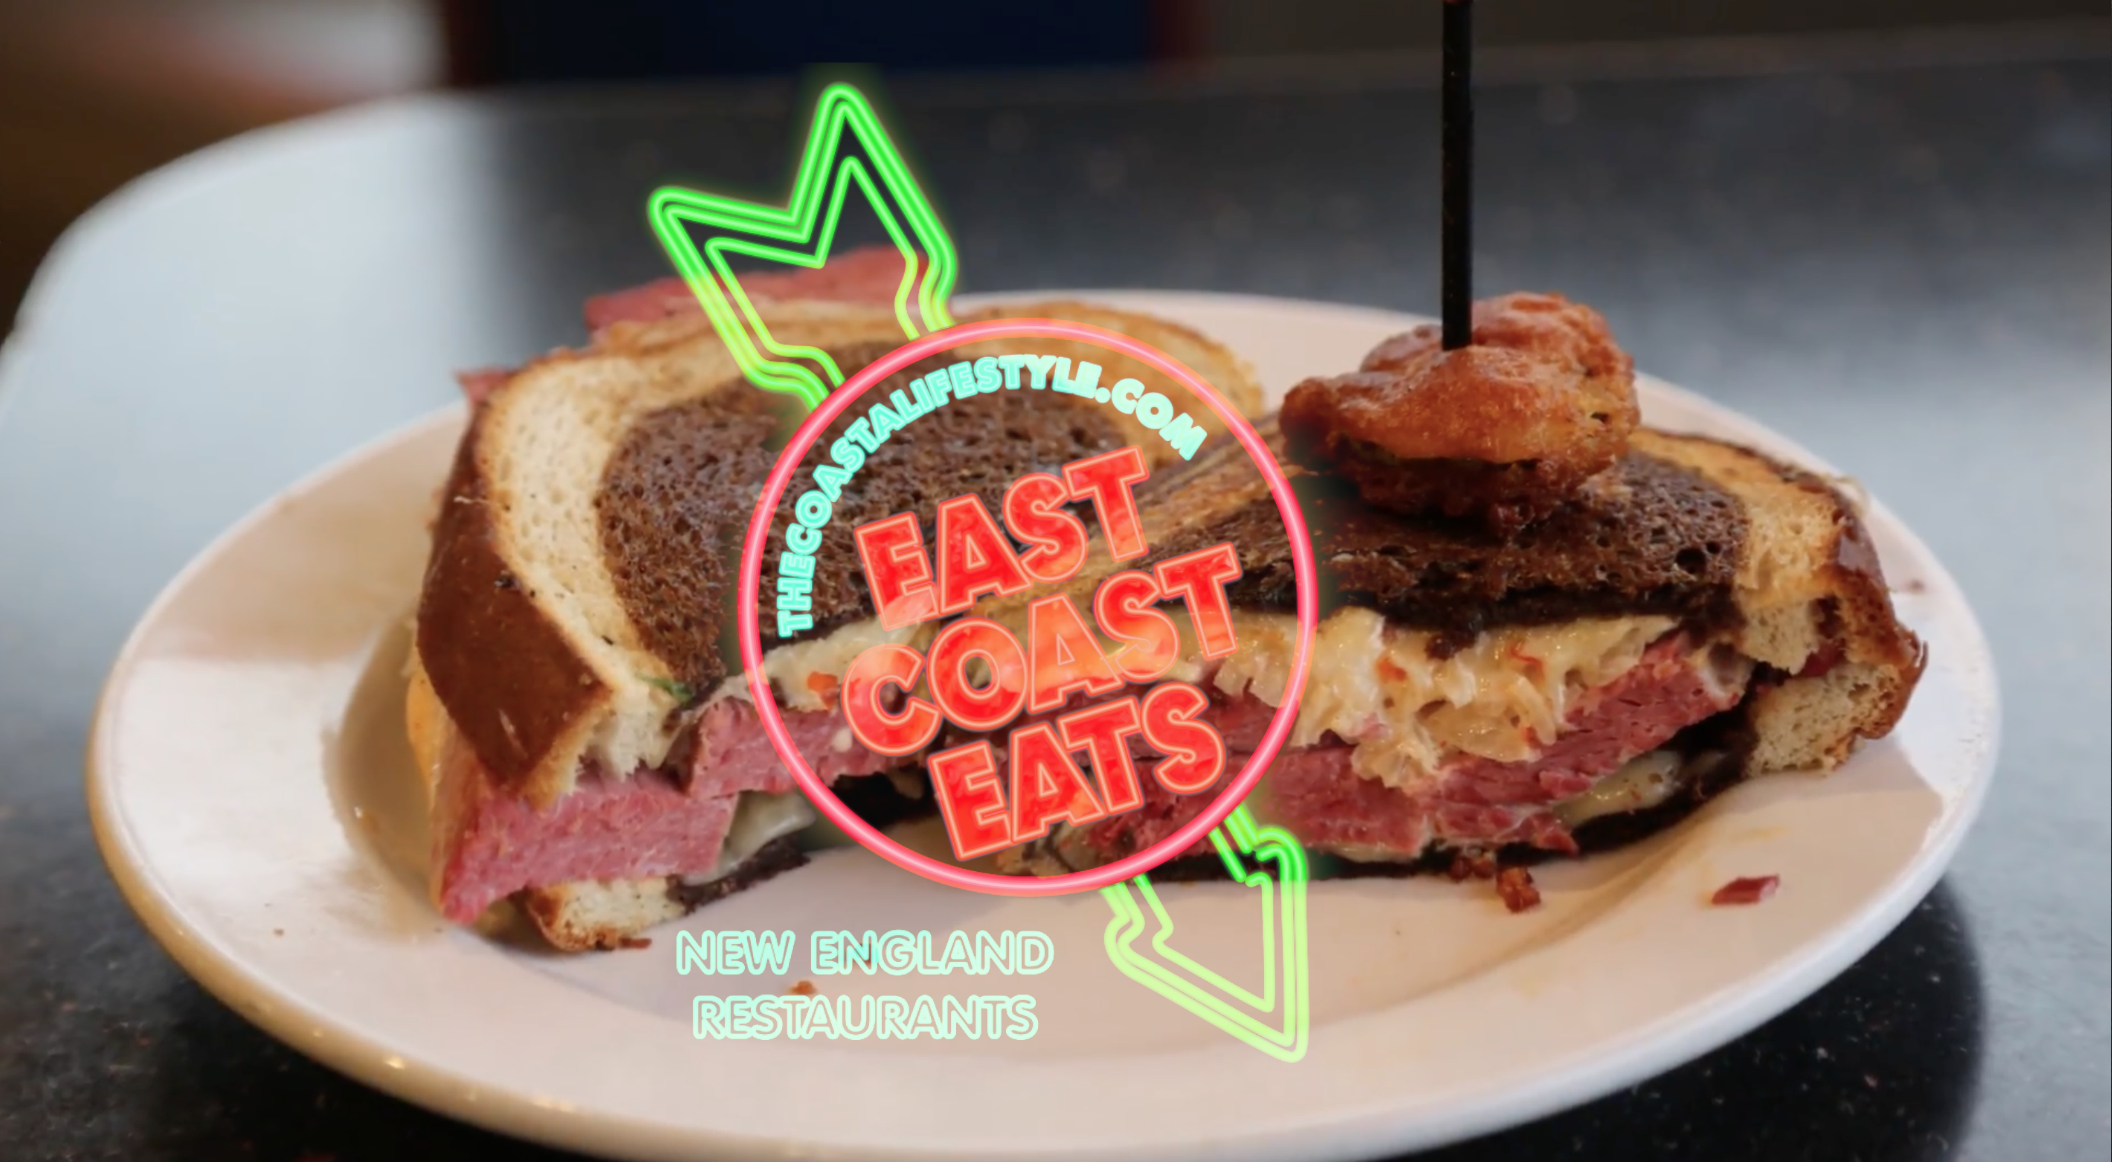 East coast eats - We travel all over the Northshore of Massachusetts & New Hampshire to find the best local restaurants and breweries that you can enjoy right in your own backyard!